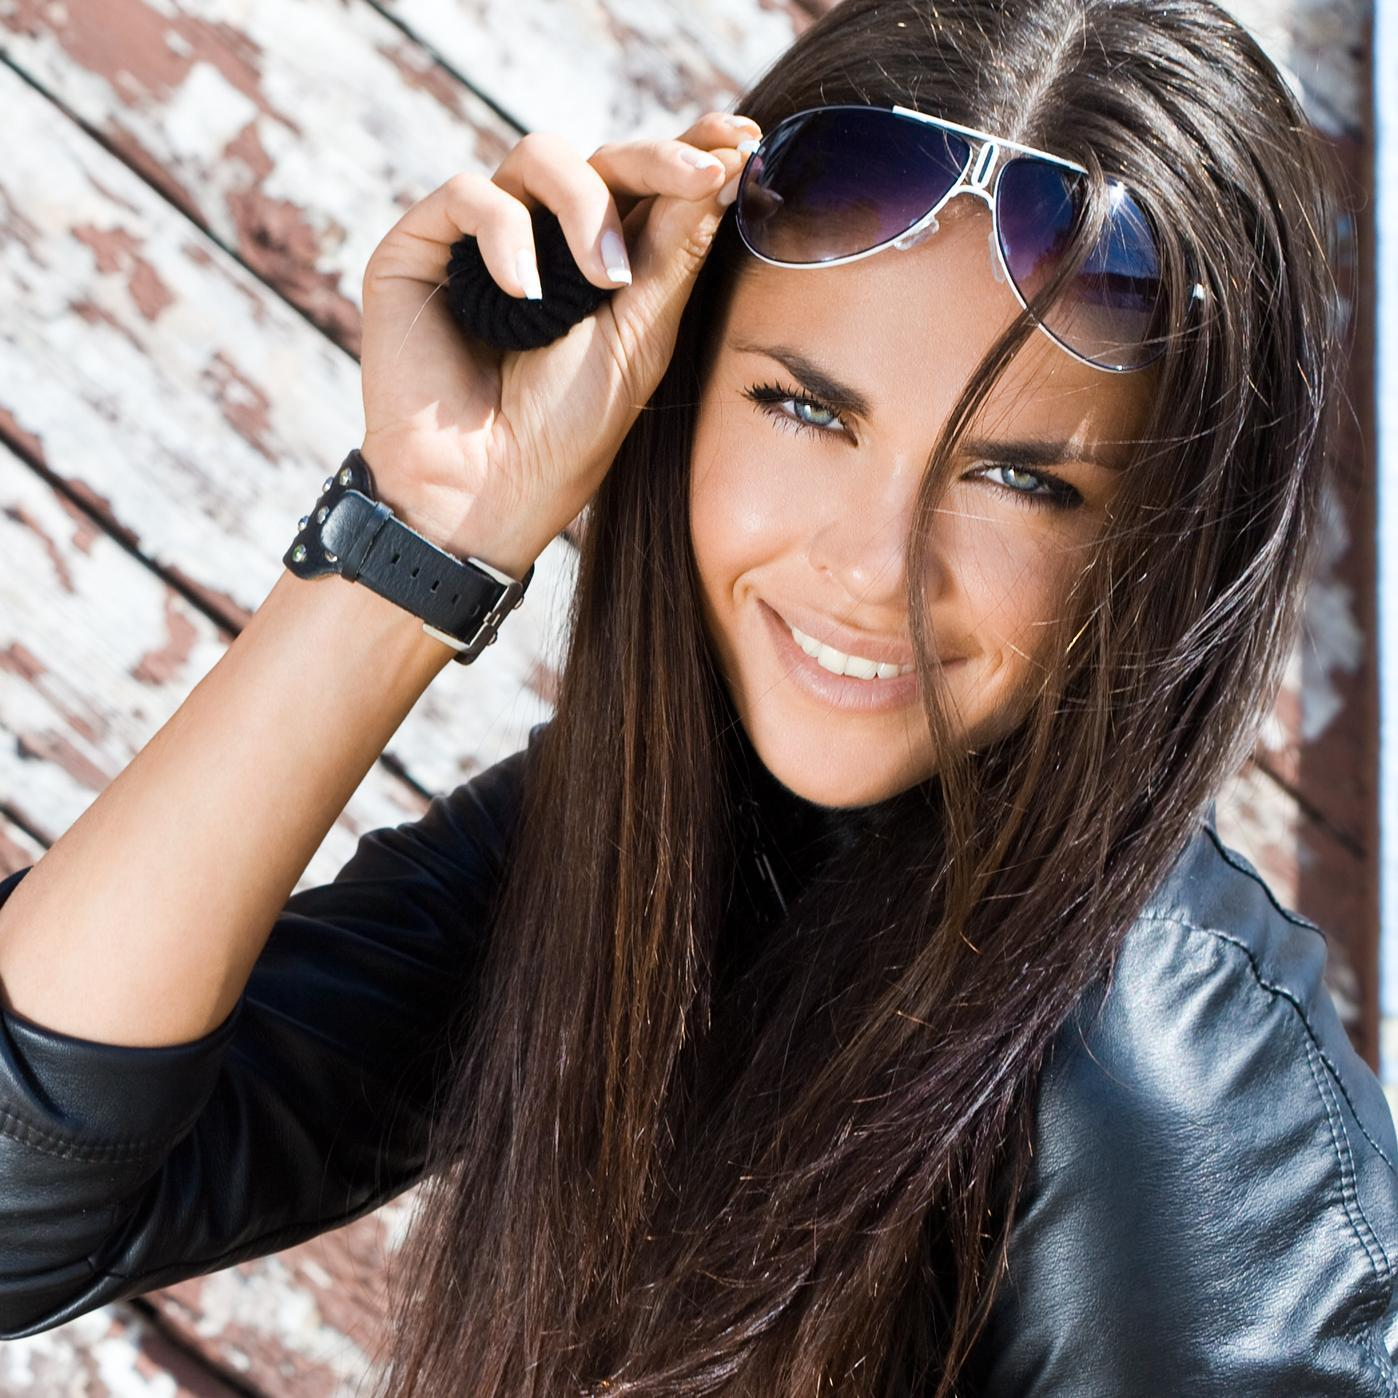 ngelholm latino personals Online personals with photos of single men and women seeking each other for dating asian, latino, mixed races a premium service designed to unite singles worldwide.